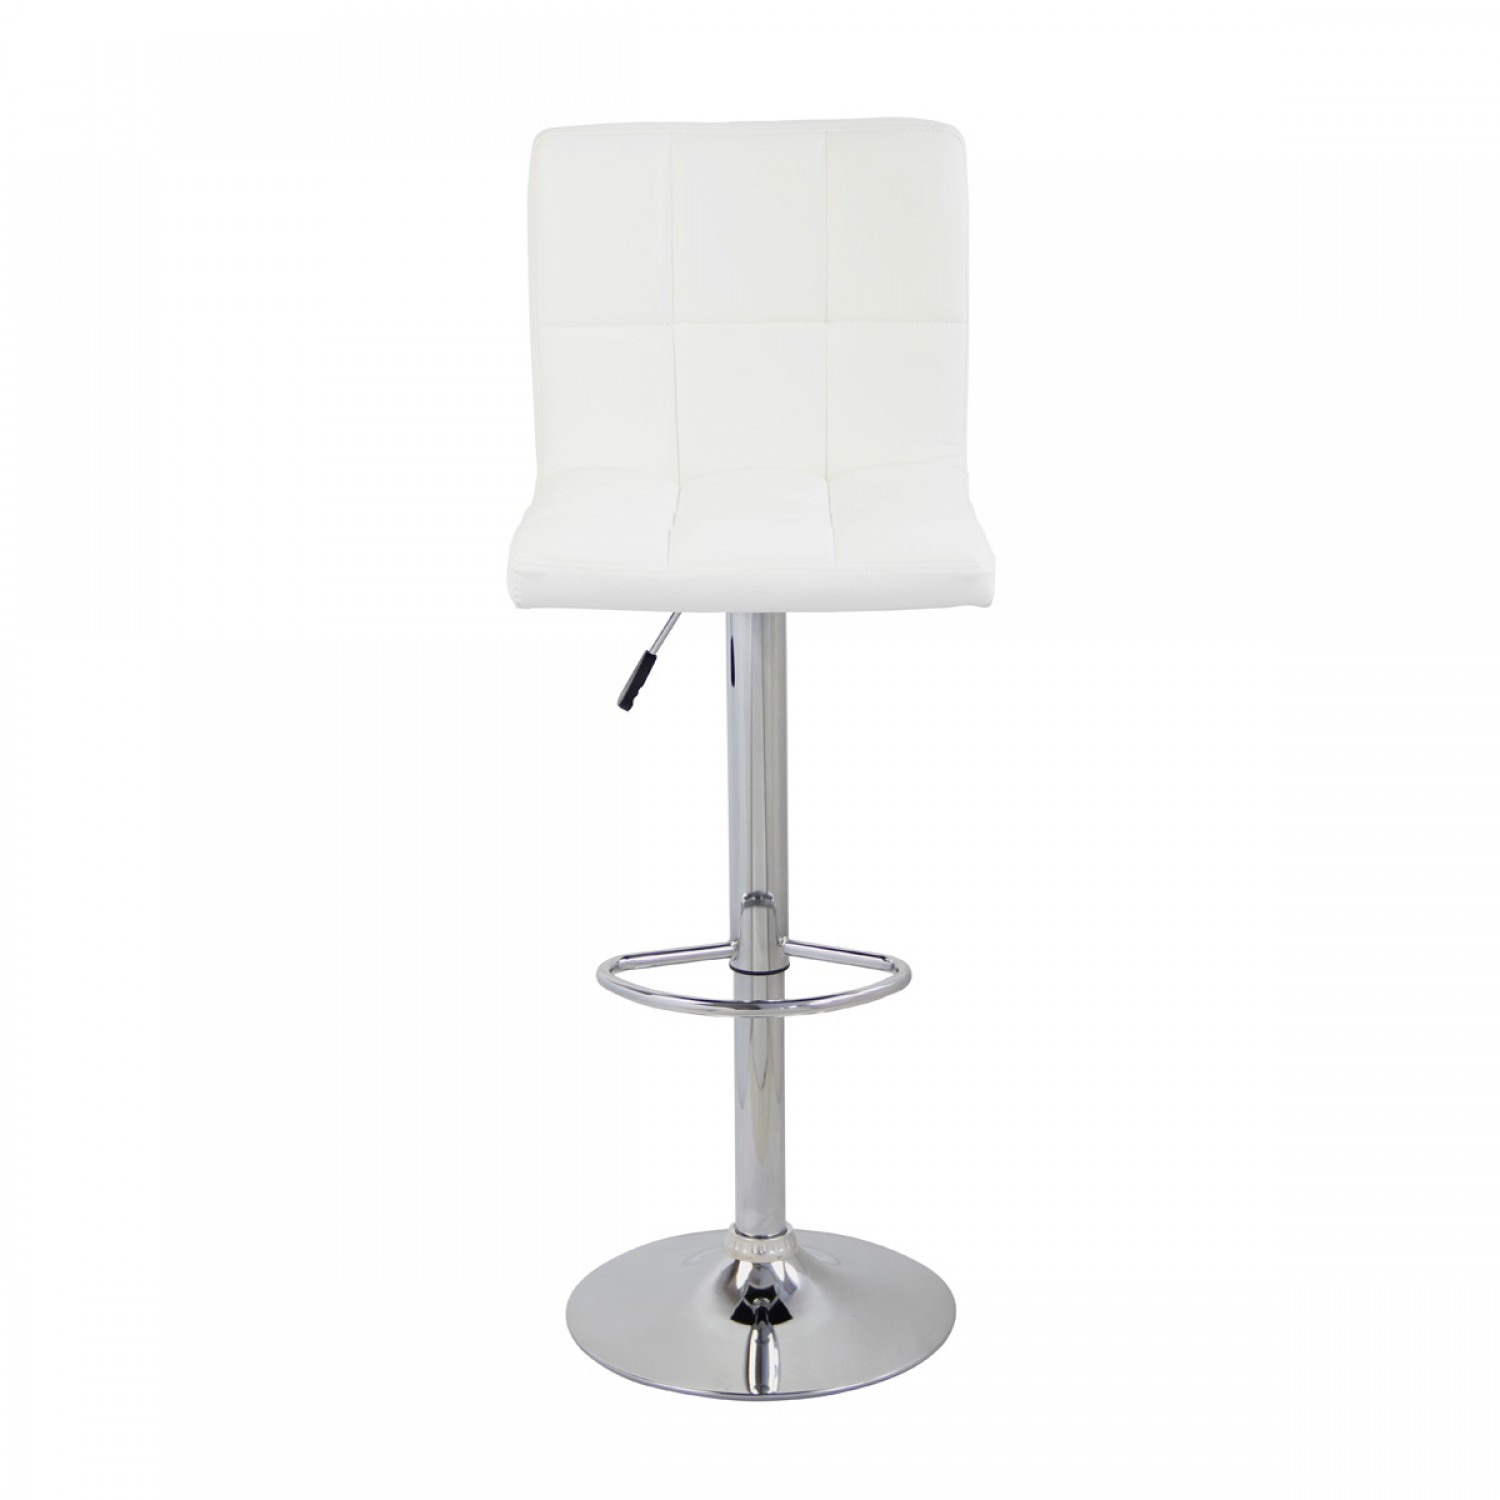 Charly Lot De 2 Tabourets De Bar Blancs Tabouret De Bar Manhattan Blanc Lot De 2 Koya Design